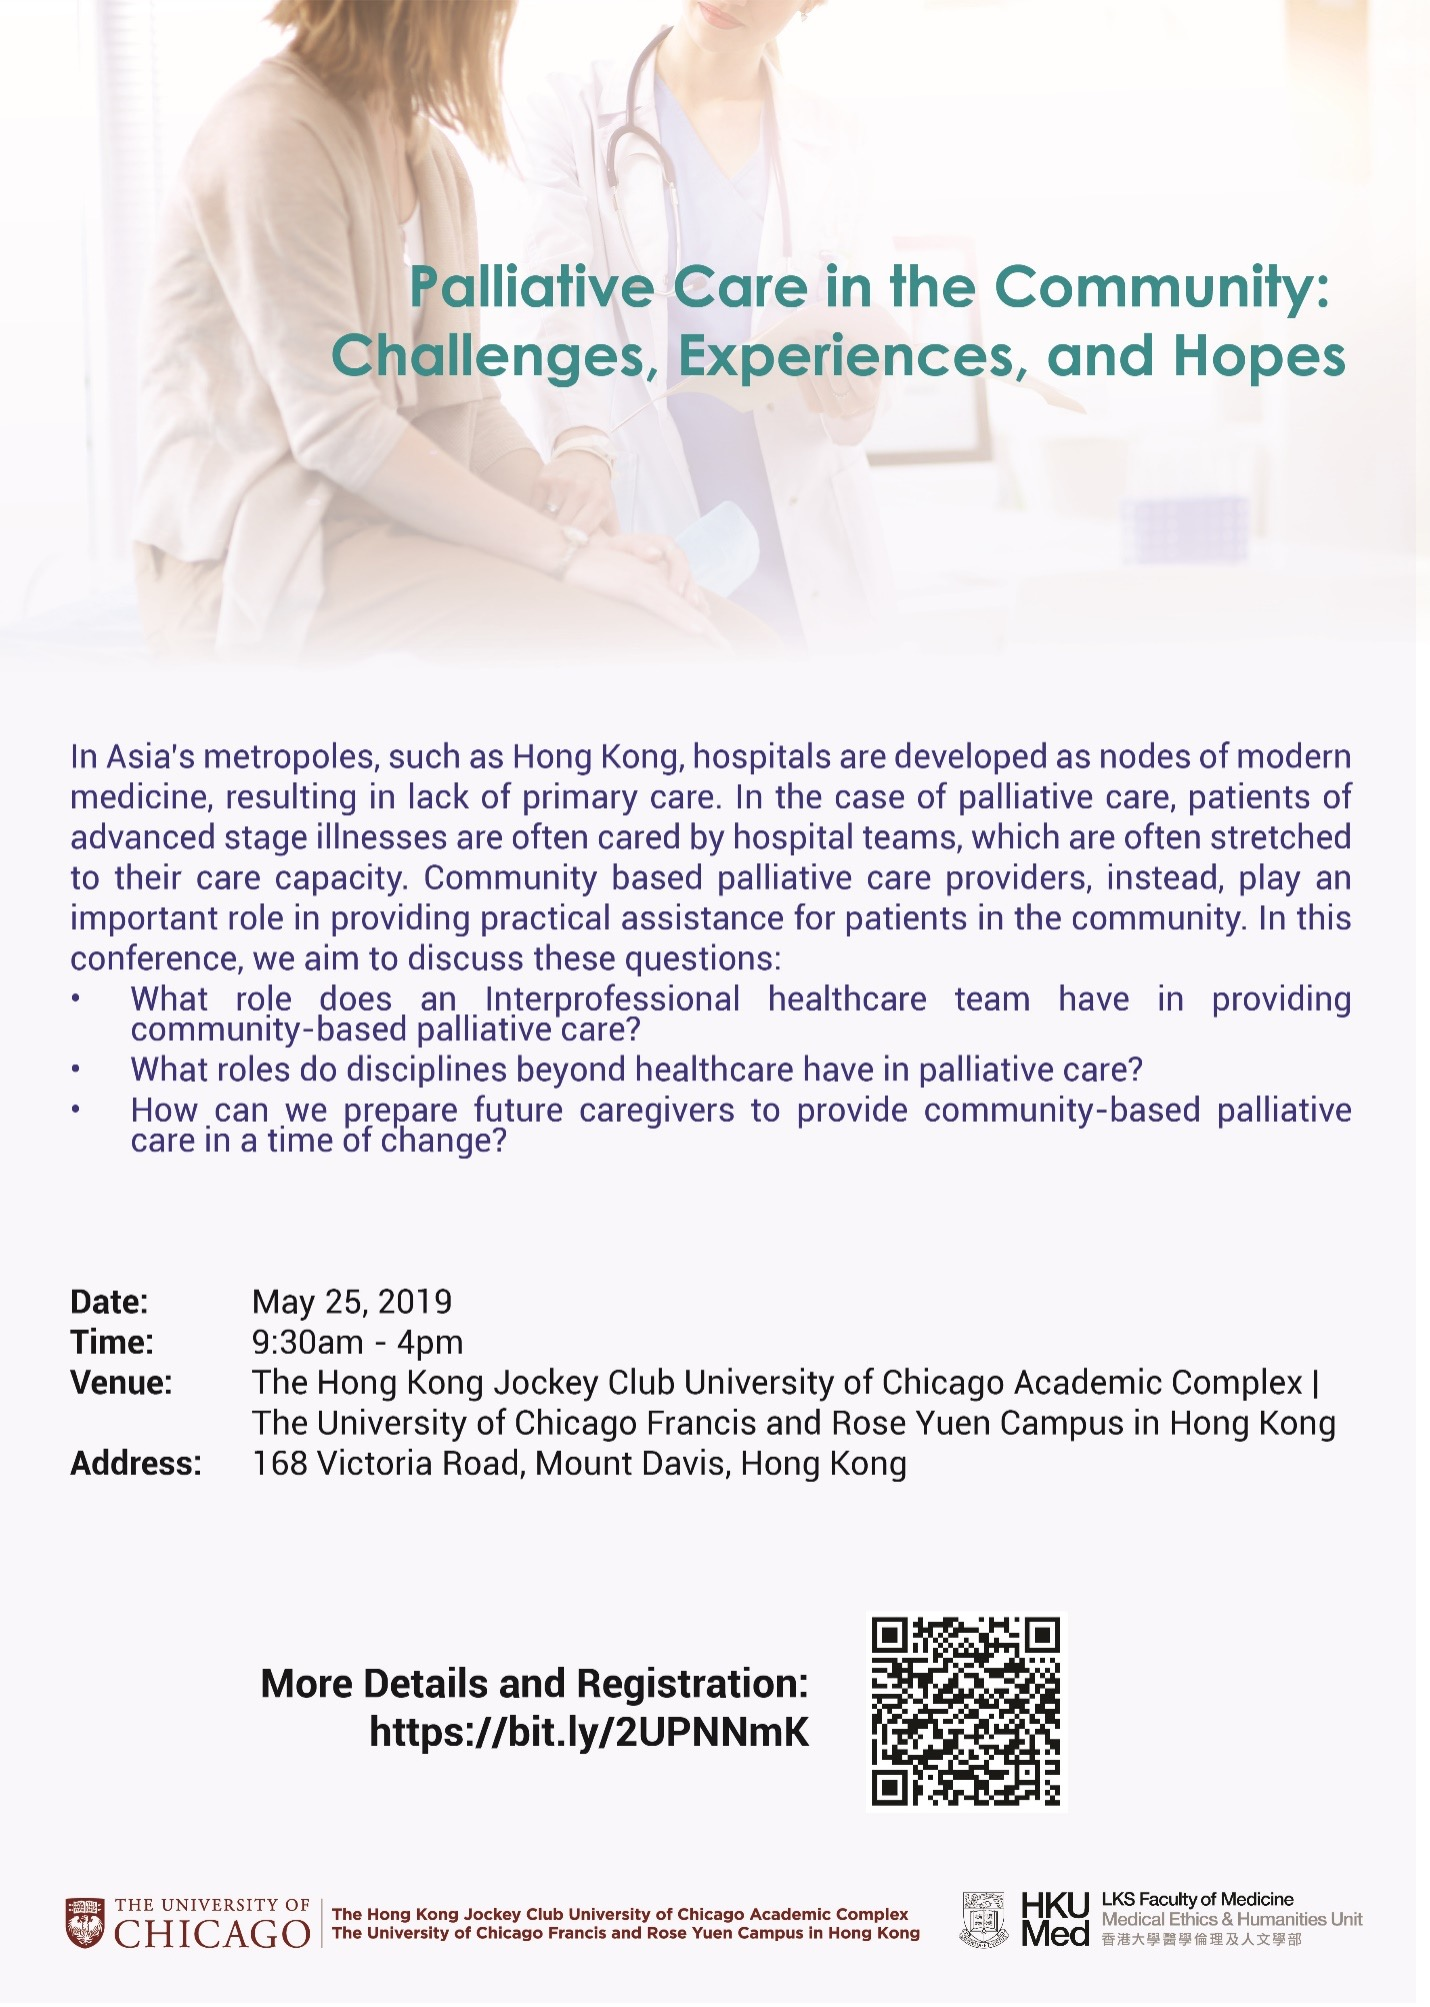 Palliative Care in the Community: Challenges, Experiences, and Hopes